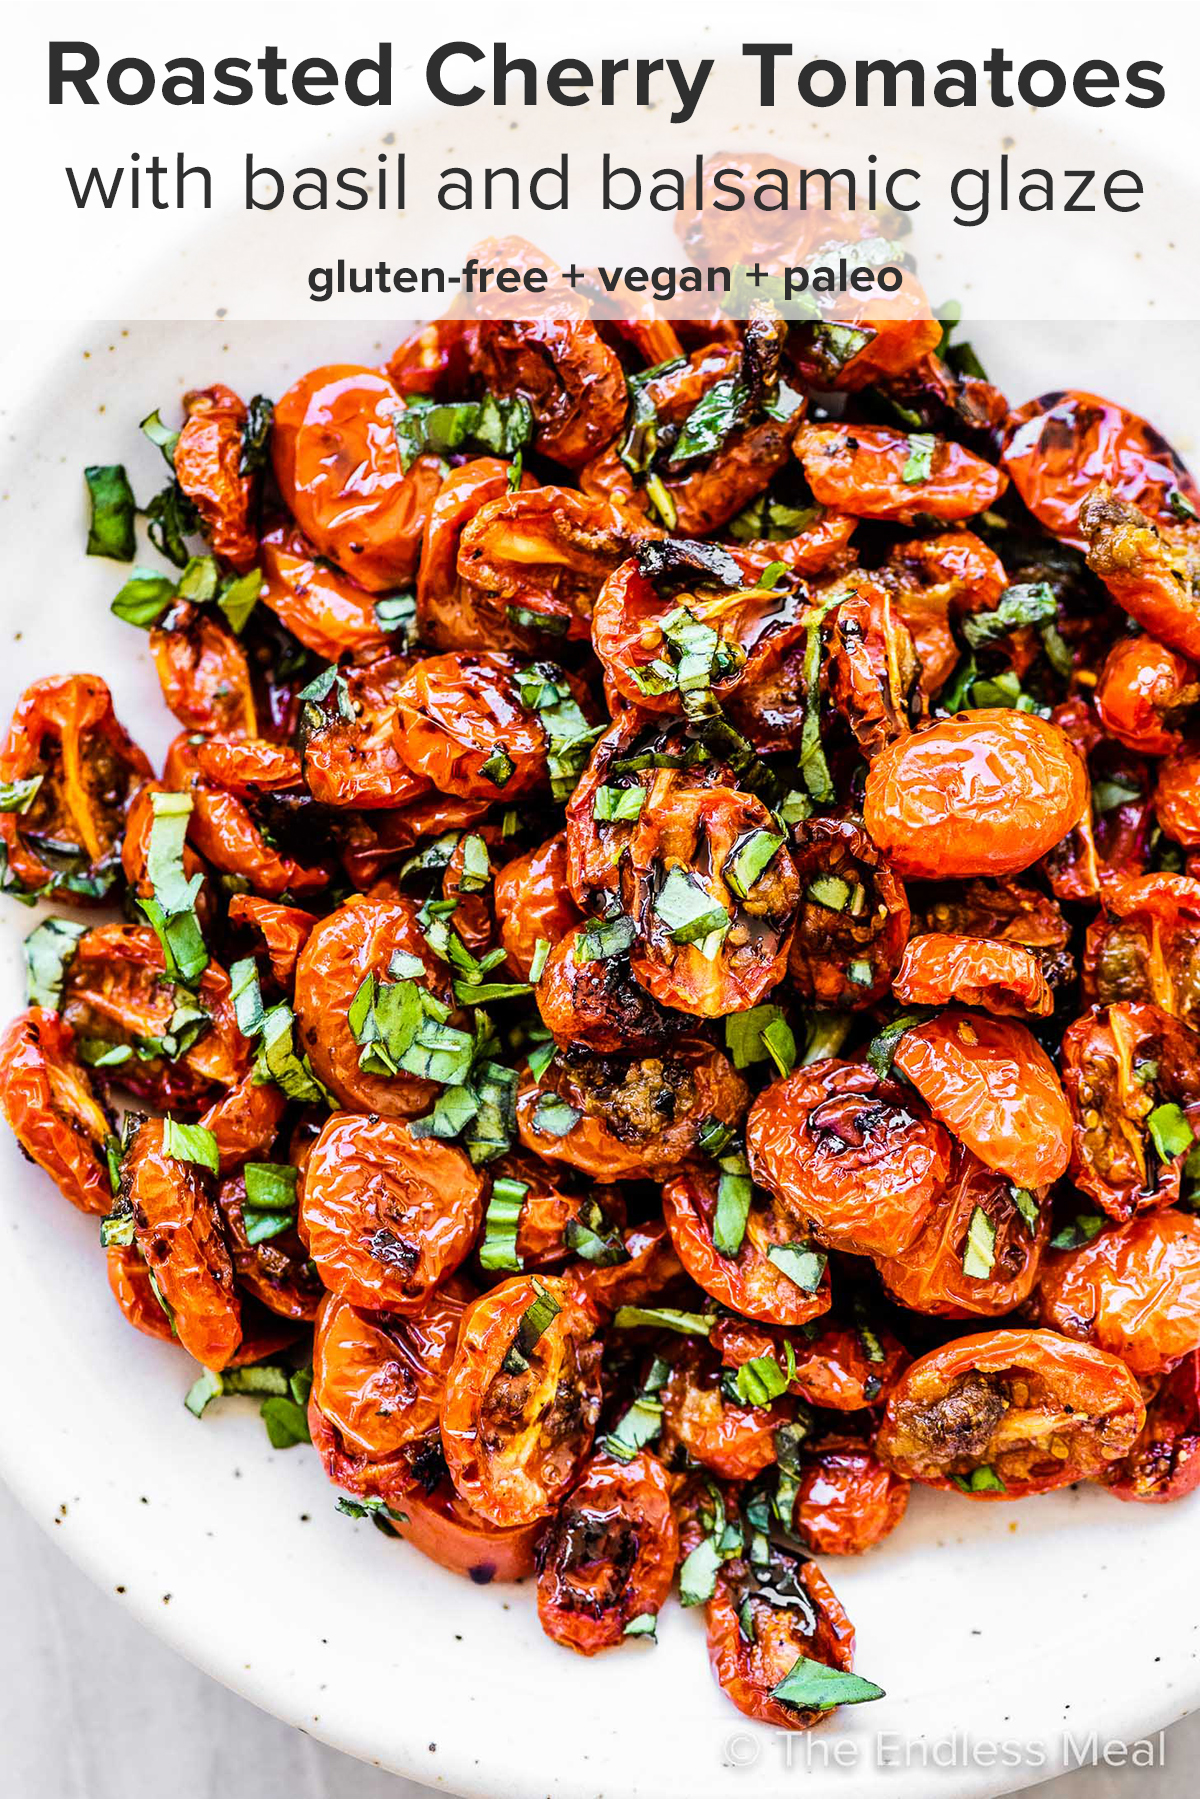 Garlic Roasted Cherry Tomatoes easy recipe   The Endless Meal®